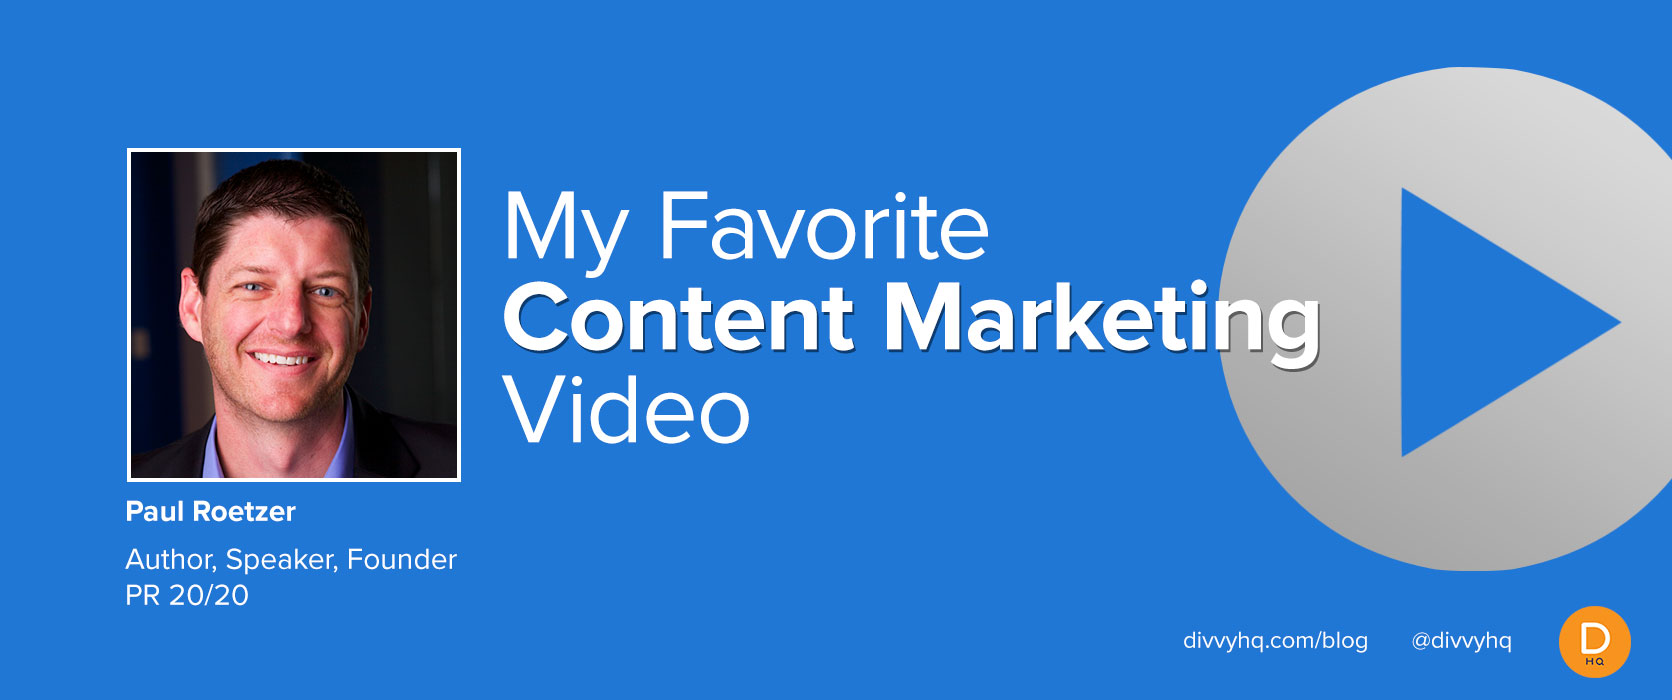 My favorite content marketing video paul roetzer malvernweather Image collections